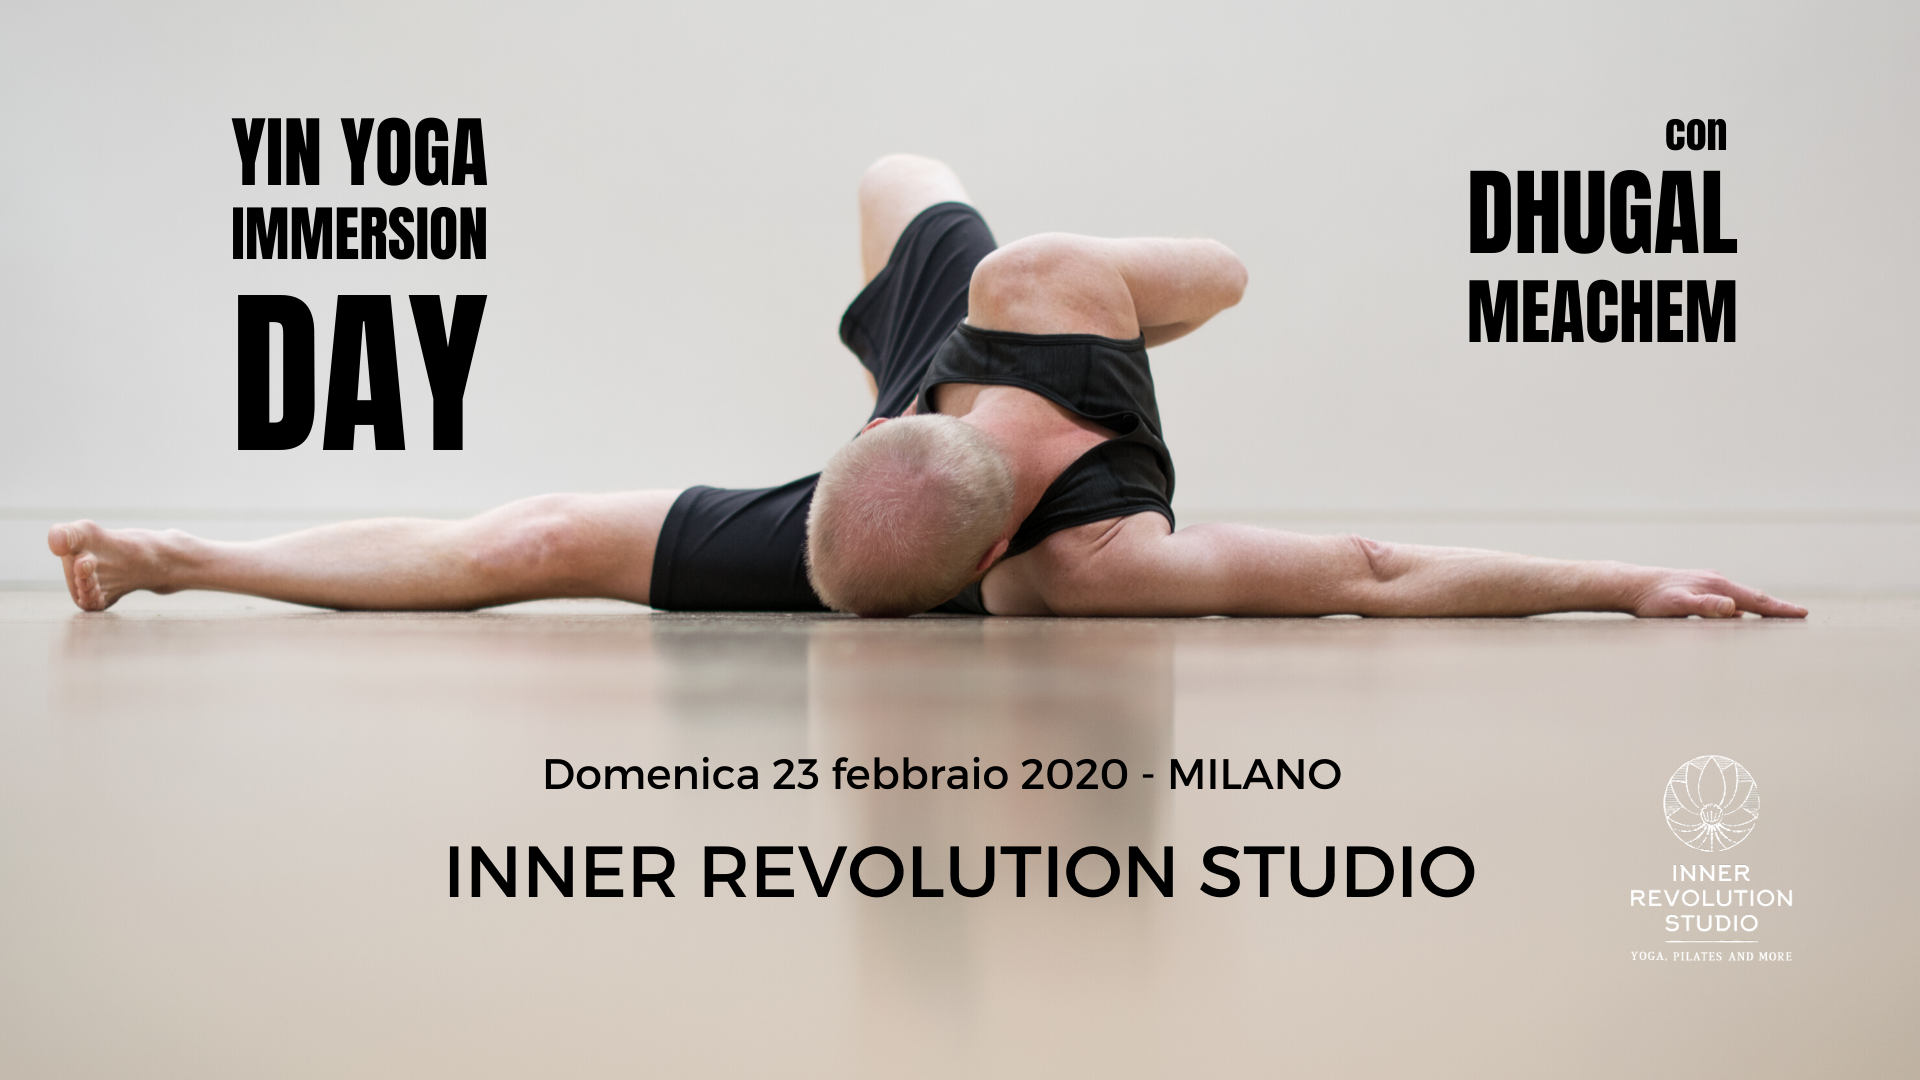 Yin Yoga Immersion Day Con Dhugal Meachem – 23 Febbraio 2020